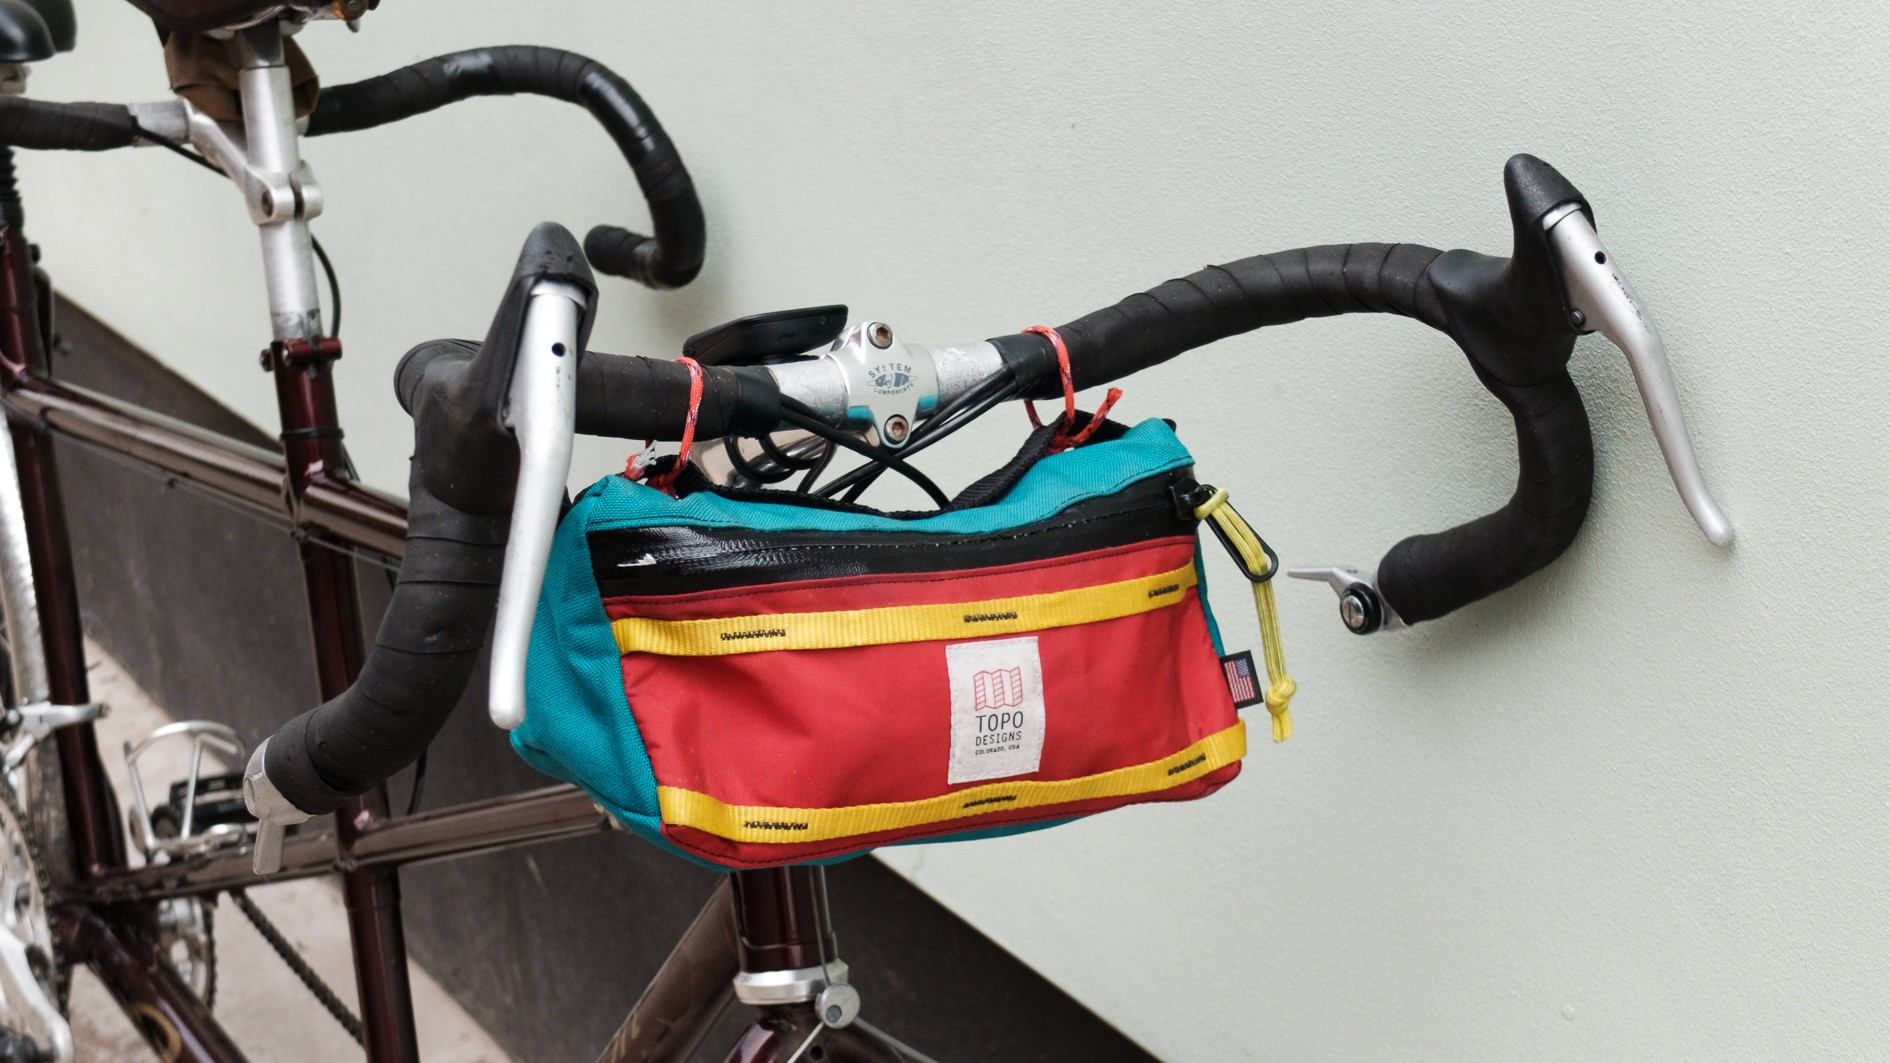 A hipster bag to complete a hipsterific cockpit